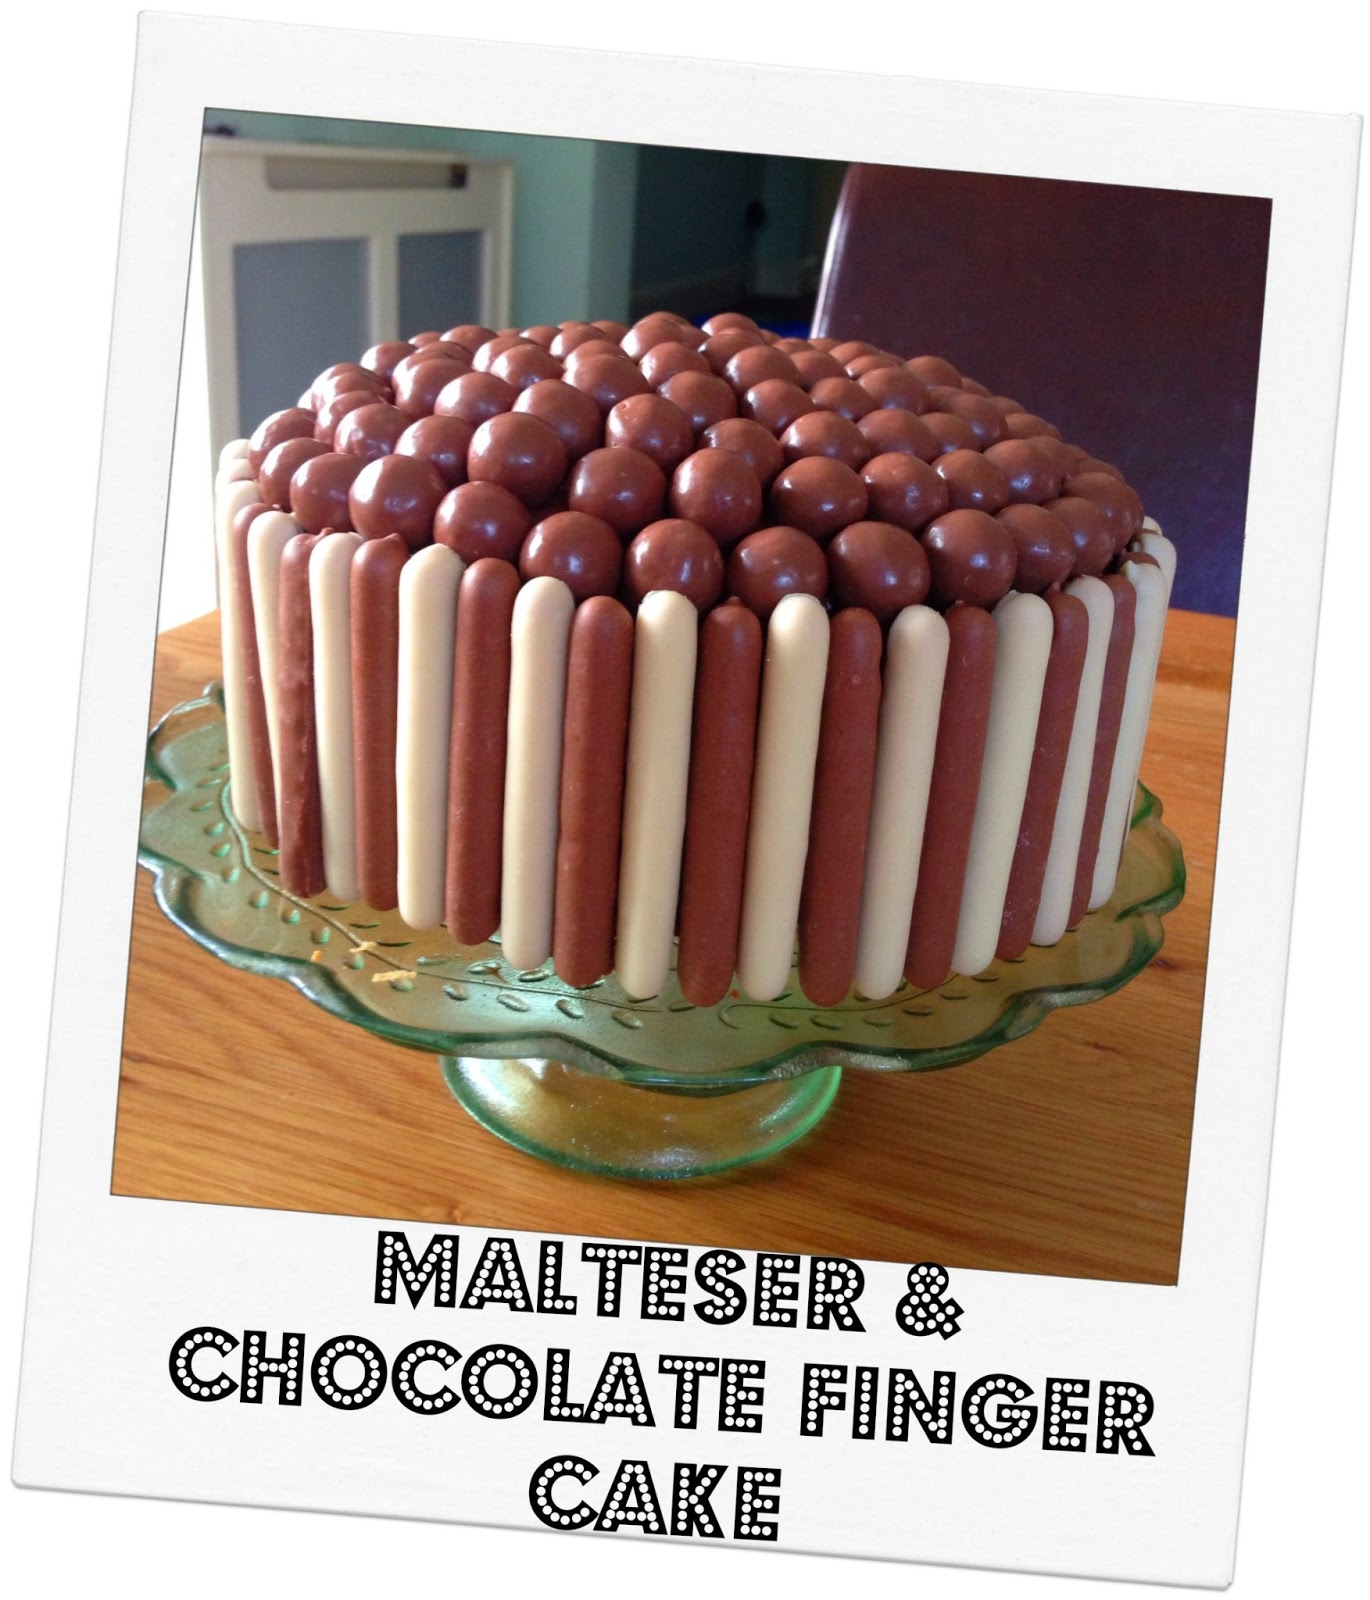 Malteser Sponge Cake Recipe